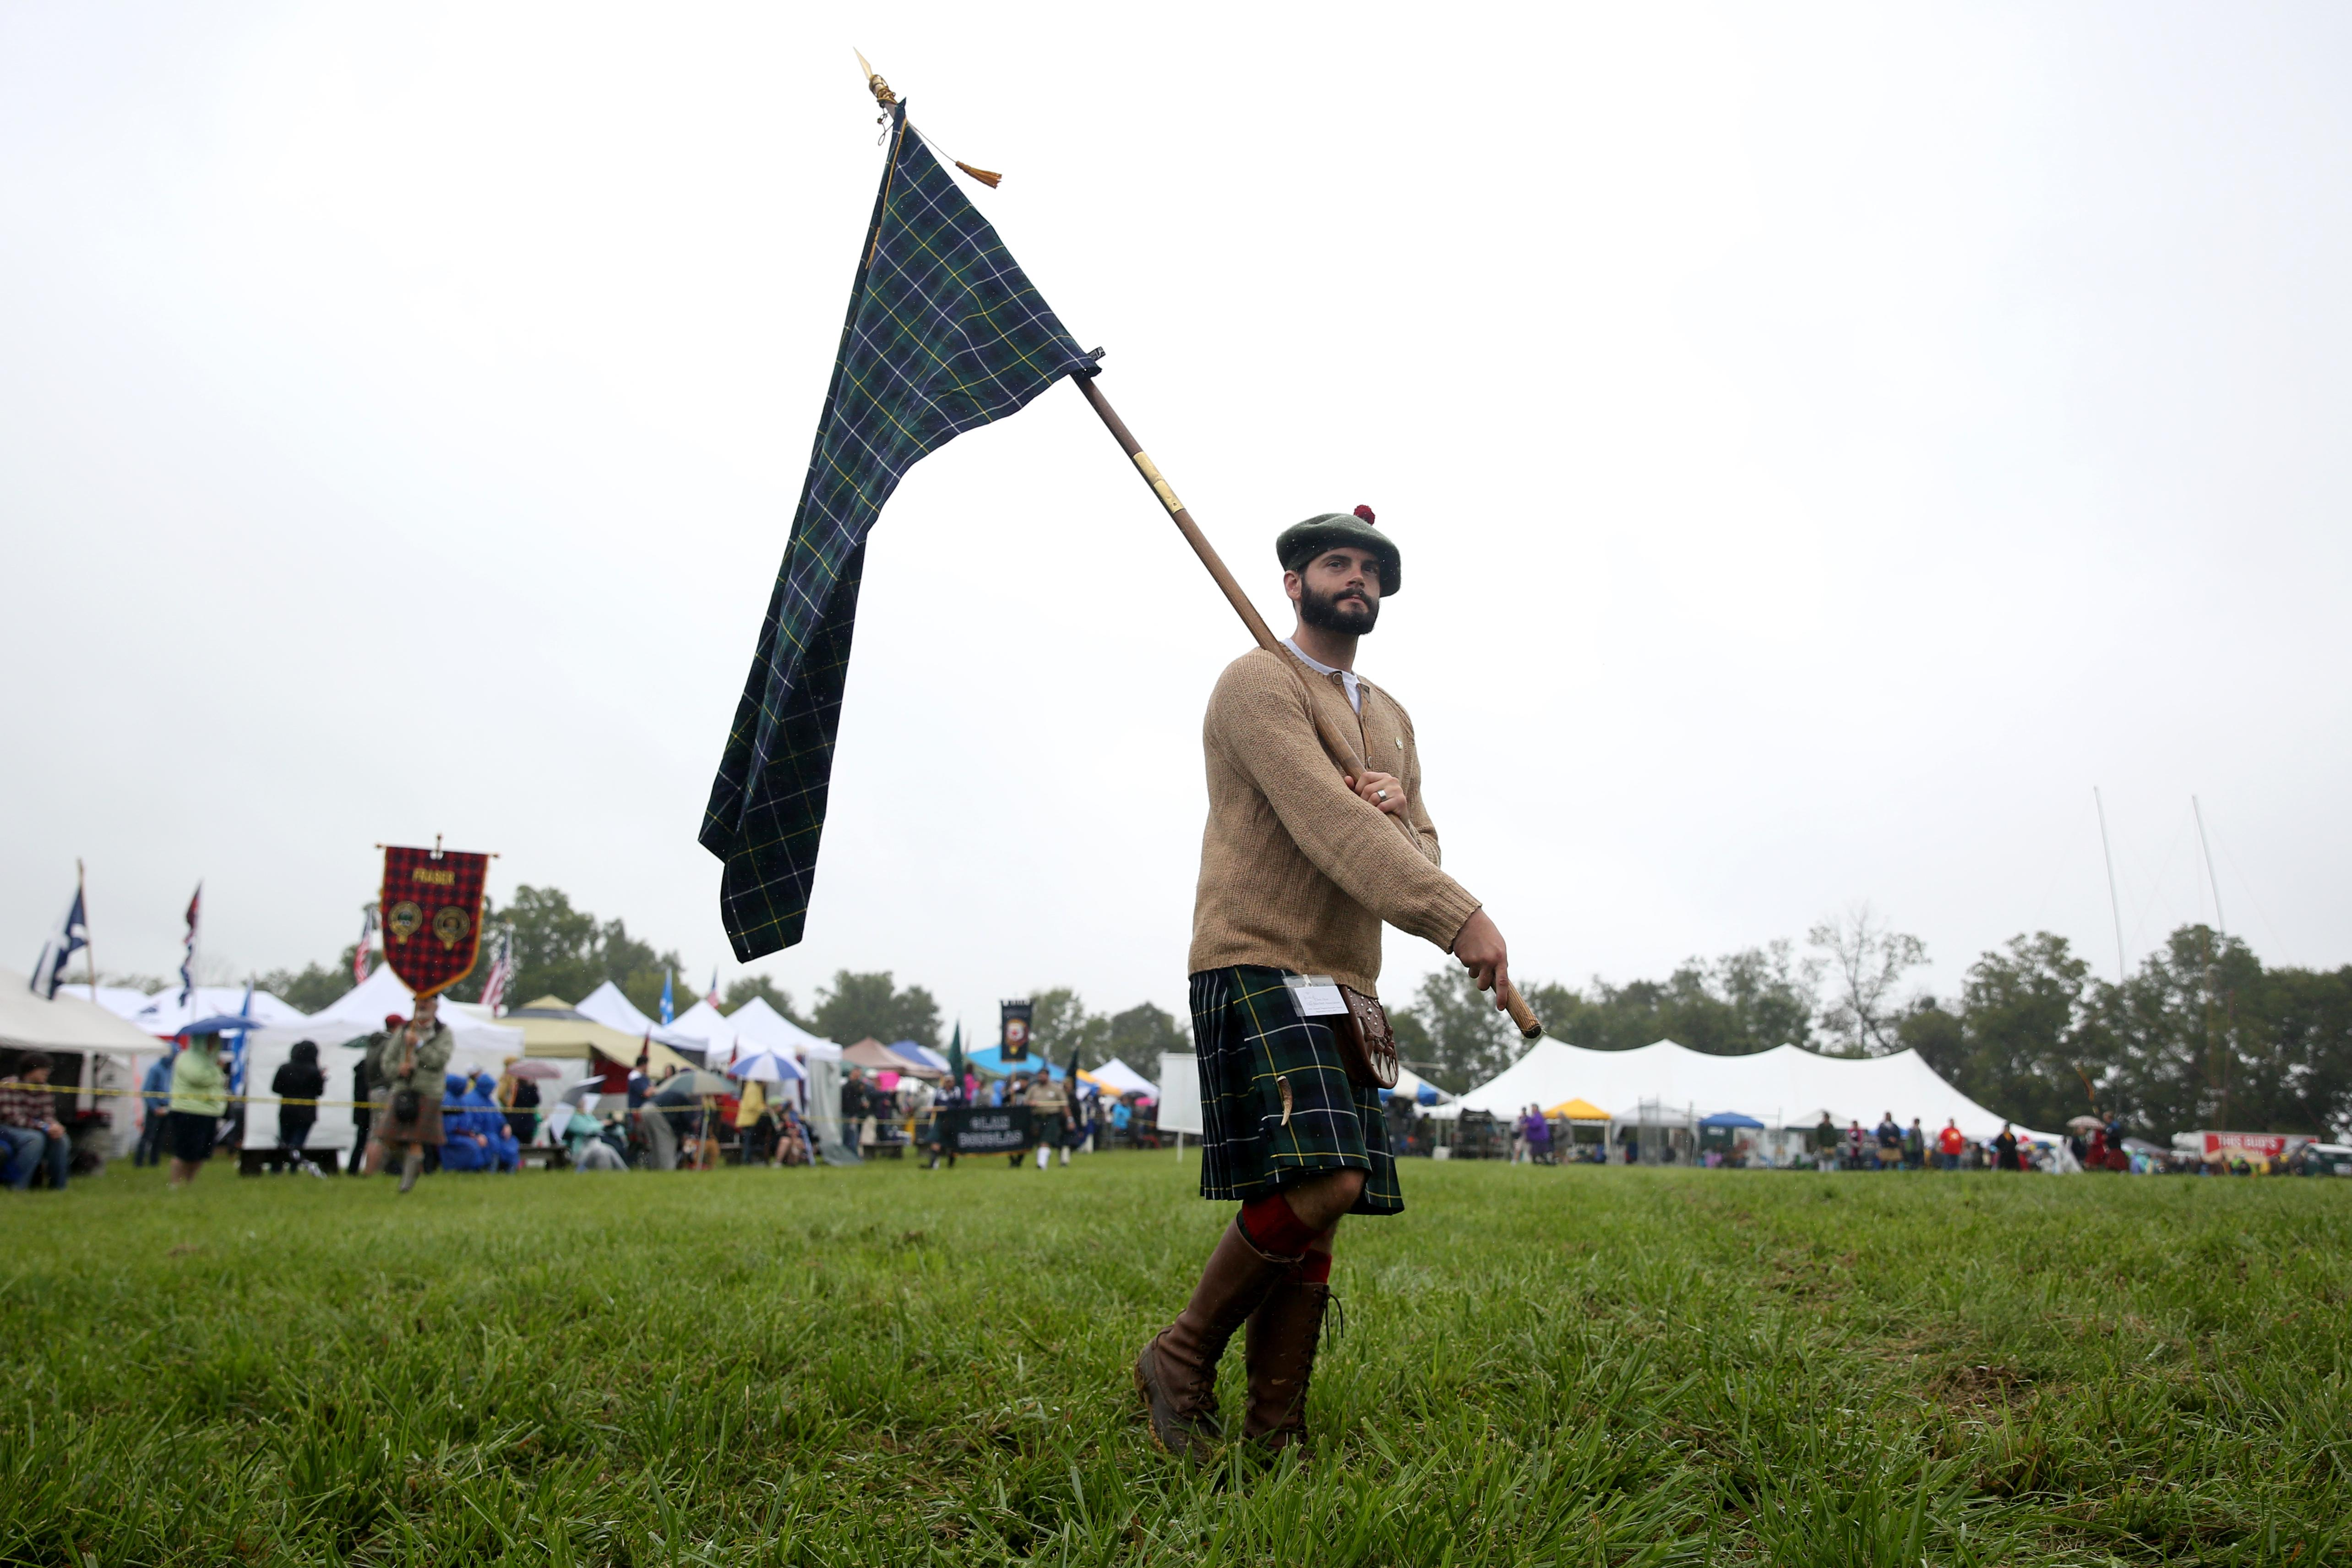 The rolling hills were lush and a steady drizzle fell as men in kilts wandered around, but this weekend's celebration of Scottish heritage was far from The Highlands. The Virginia Scottish Games and Festival were held at Great Meadows in The Plains, VA, where guests could enjoy cabre-tossing, haggis and bagpipes without buying tickets for a transatlantic flight. (Amanda Andrade-Rhoades/DC Refined)